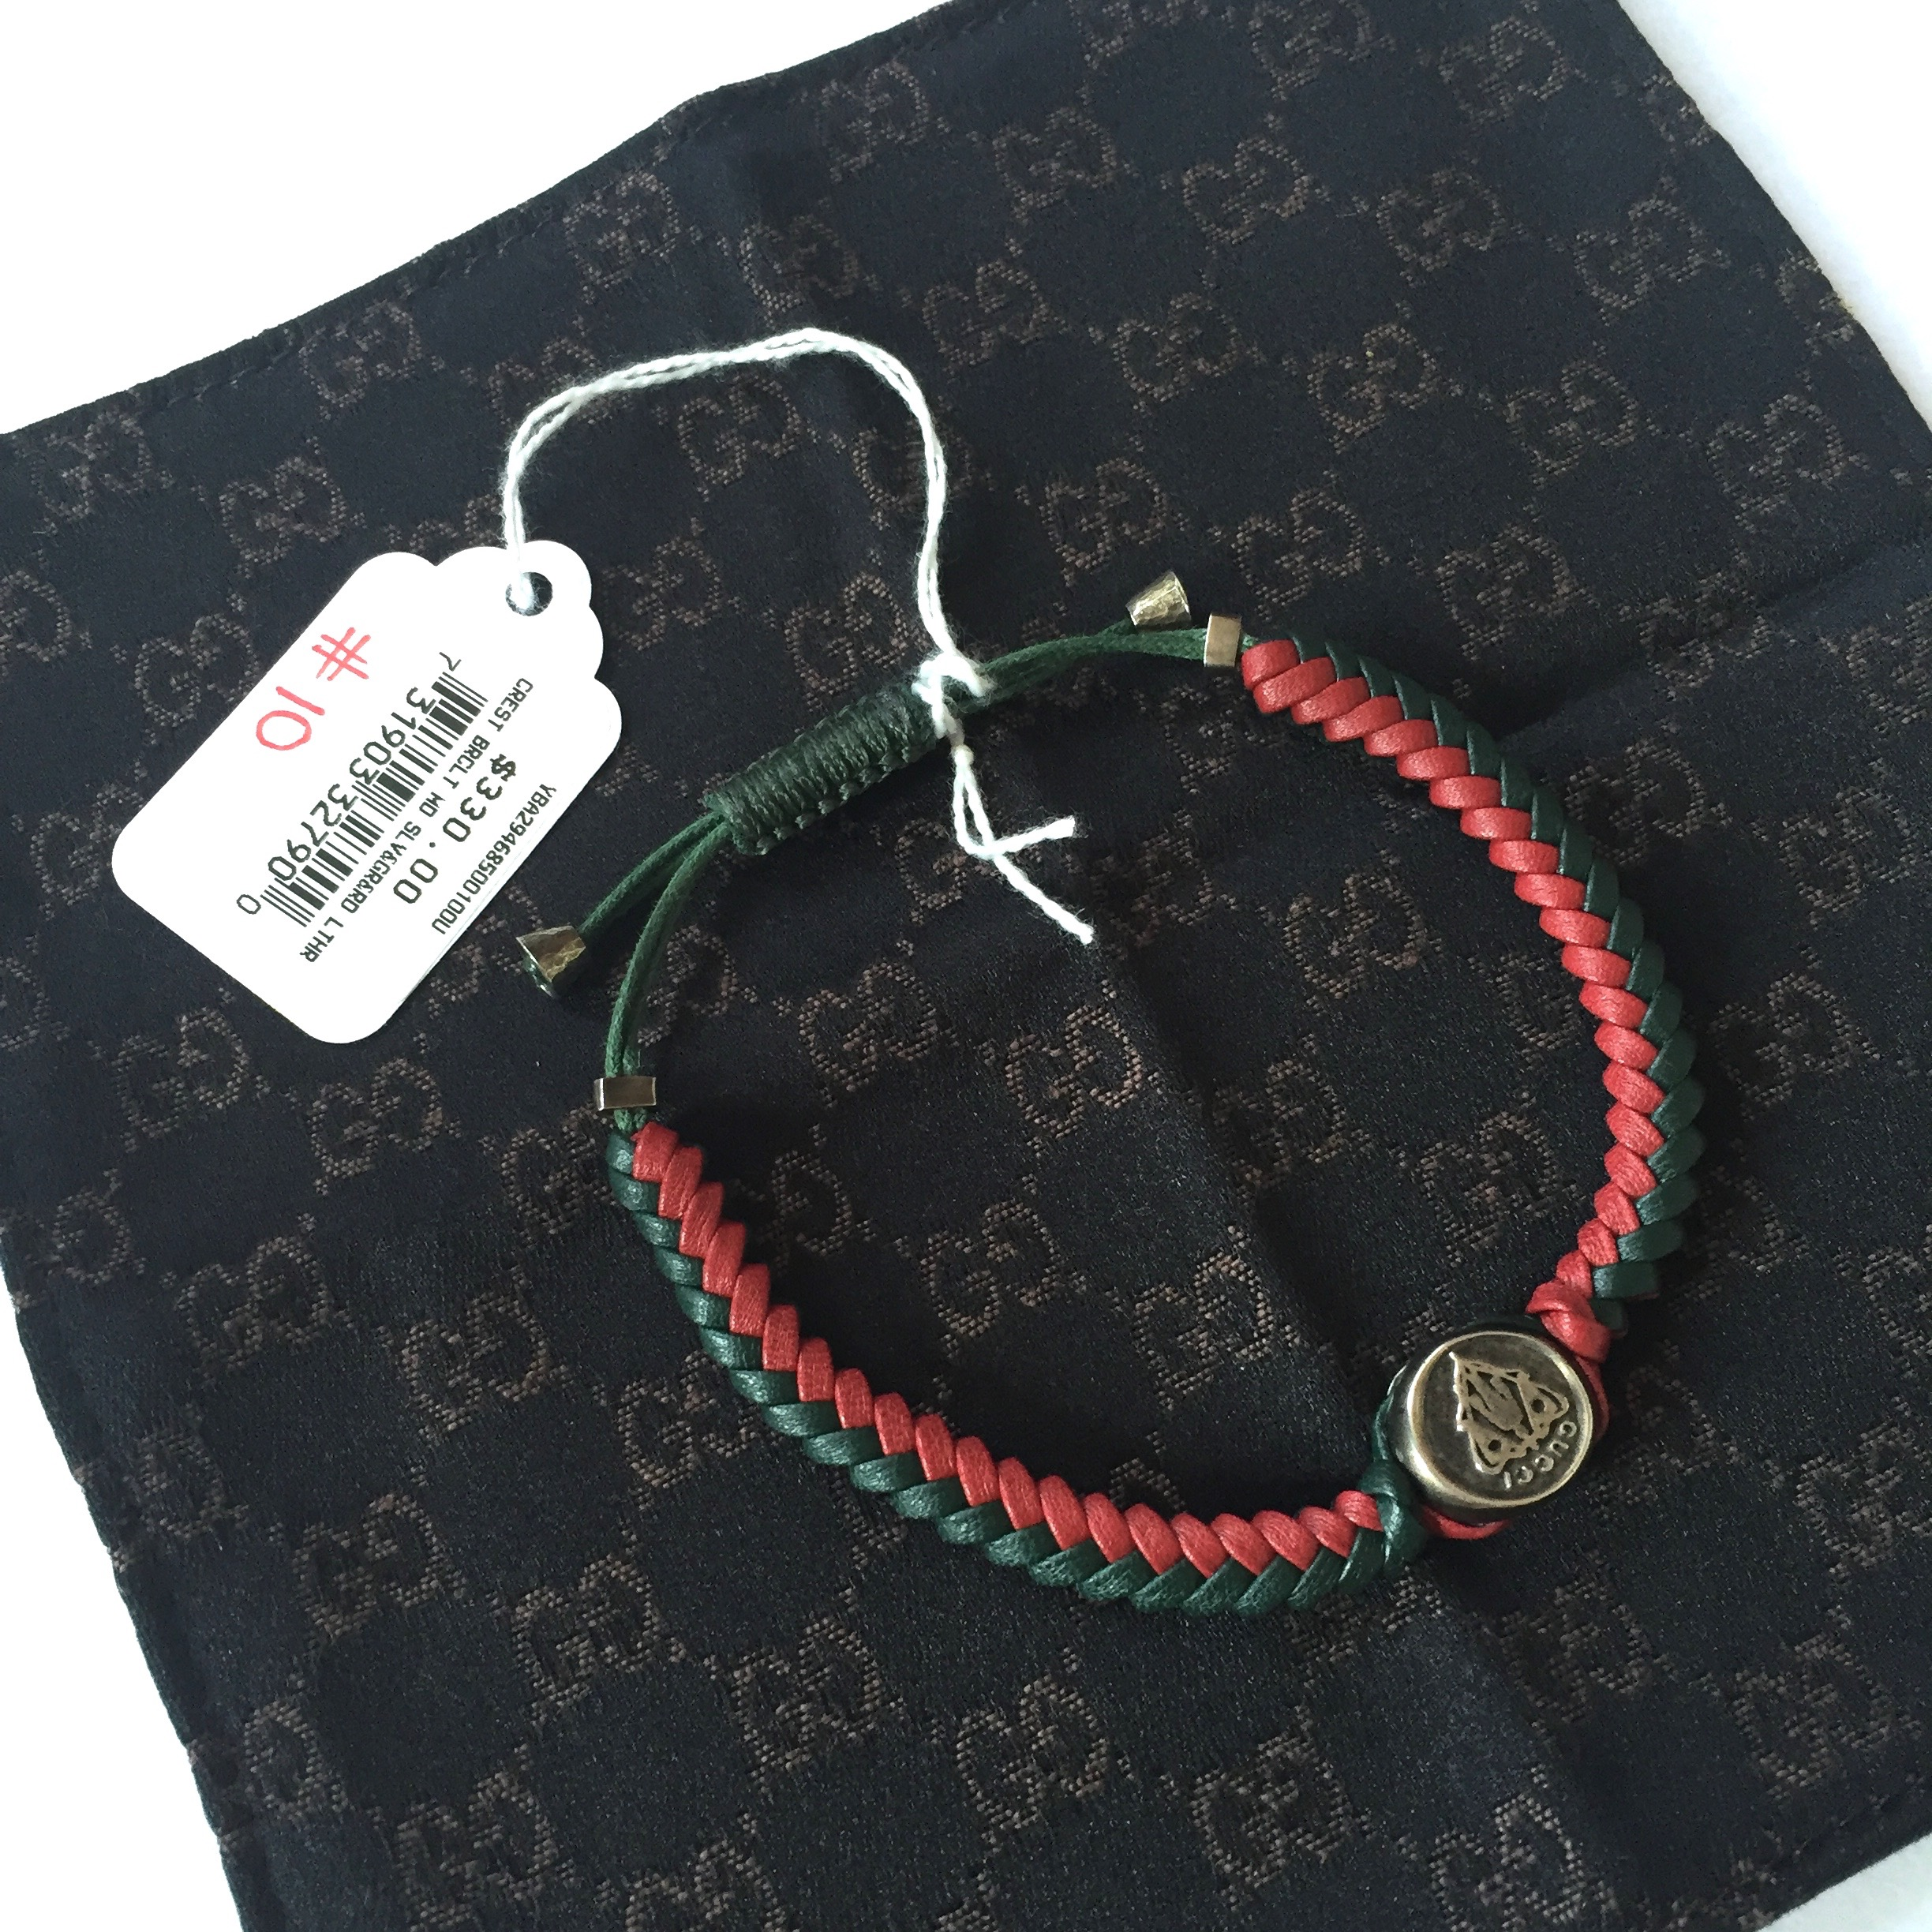 d8b85a13c Gucci Braided Leather Web Stripe Bracelet Nwt | Grailed